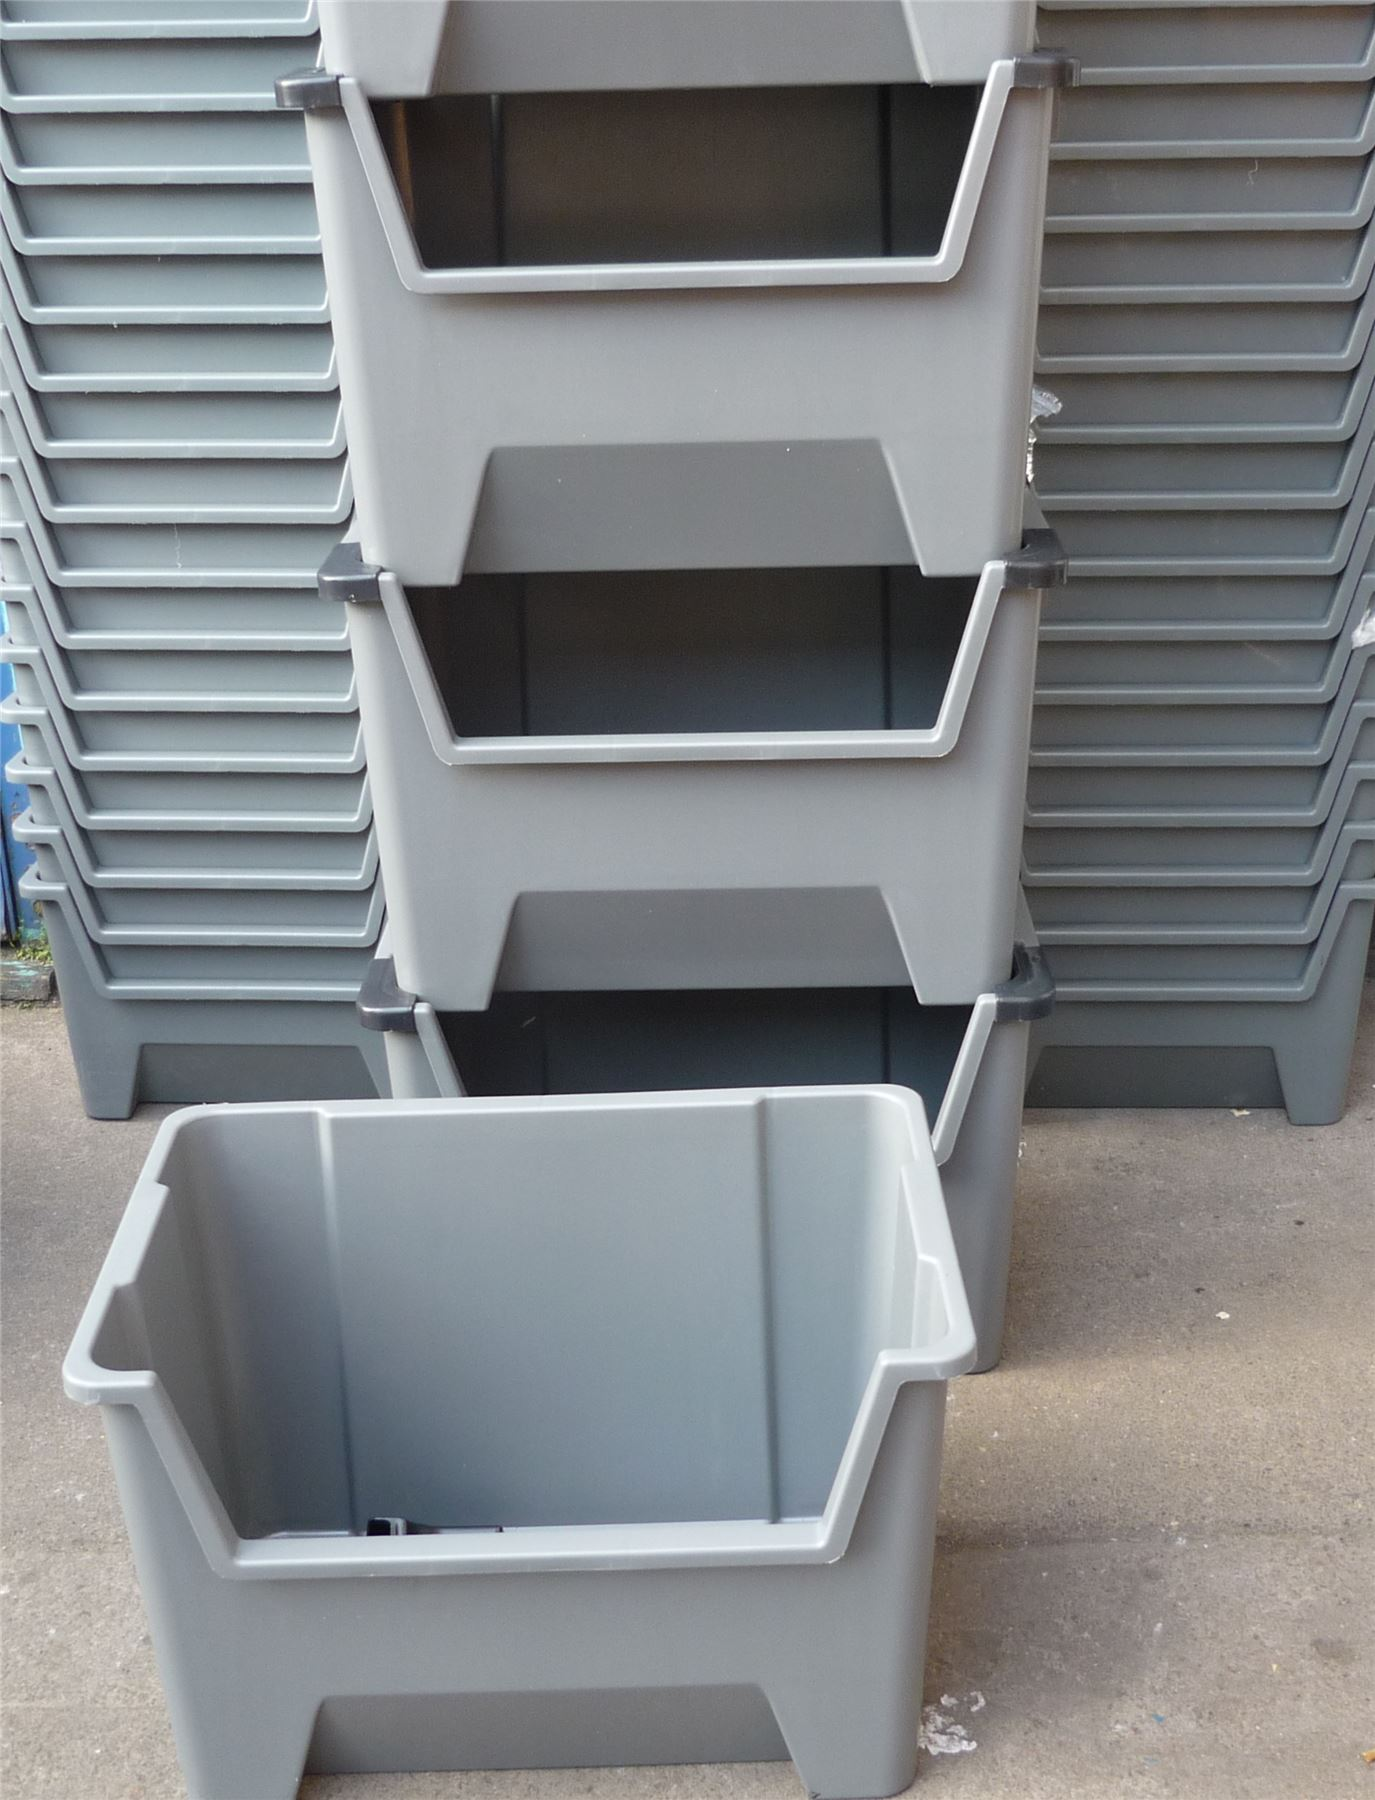 Stackable Storage Bins Large Plastic Storage Bins Boxes Stackable Space Bin